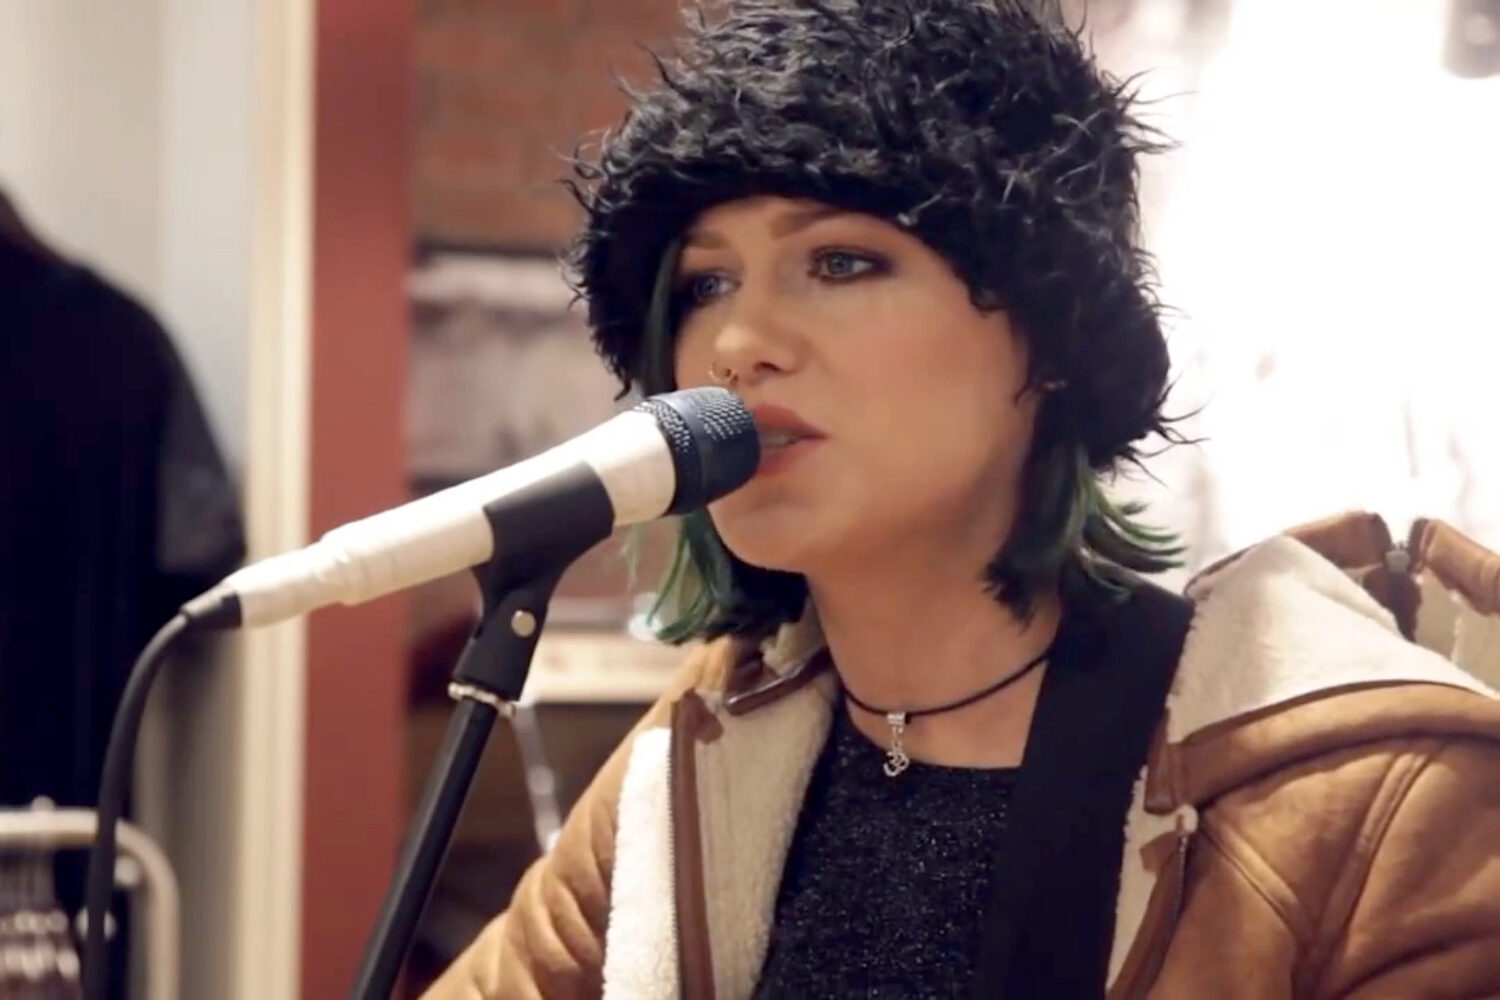 Watch Tonight Alive perform 'Amelia' in store at Dr. Martens Newcastle